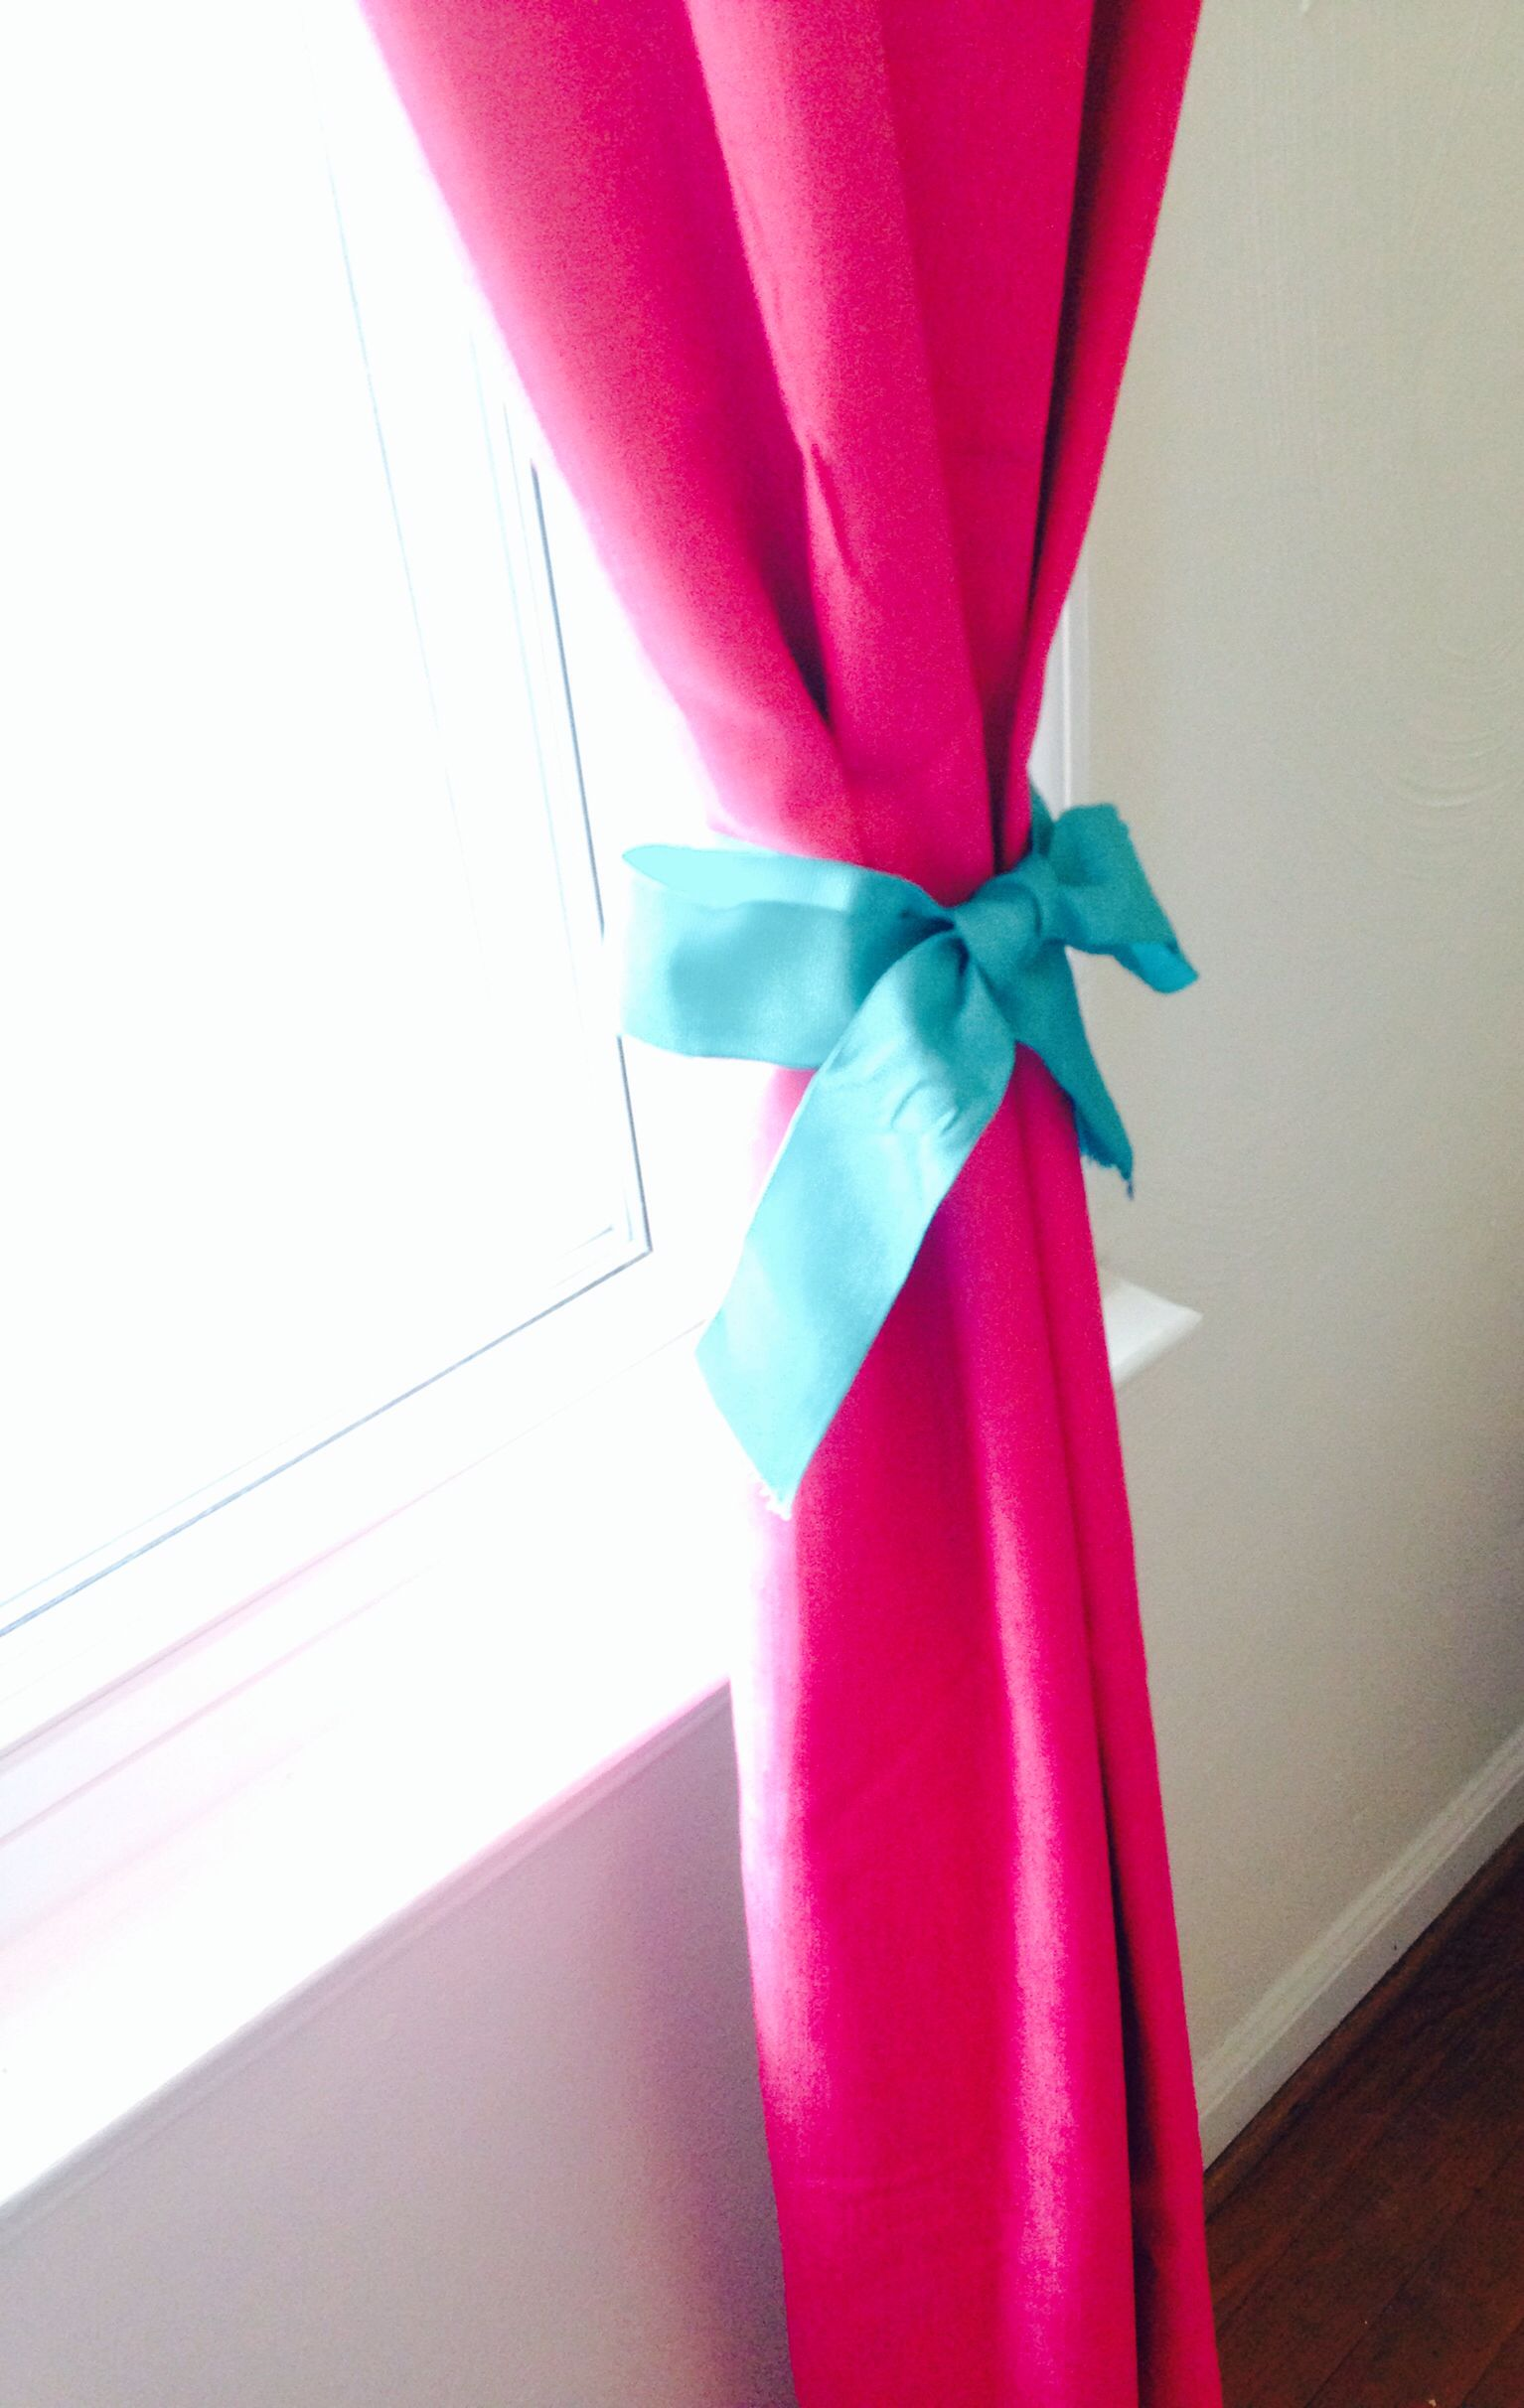 Details. Turquoise bows tied around fuchsia panel curtains